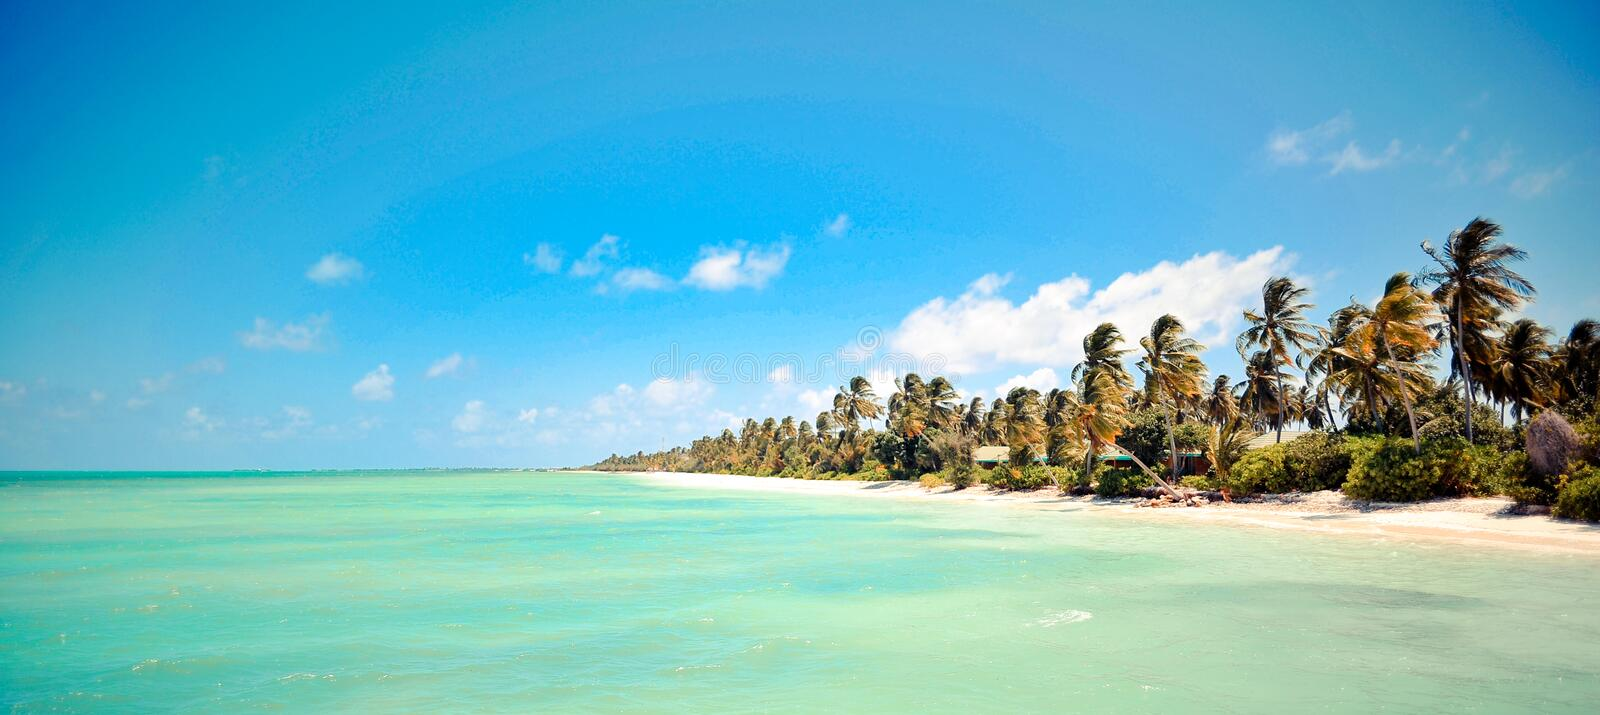 Download Tropical beach stock image. Image of tropic, landscape - 27276835